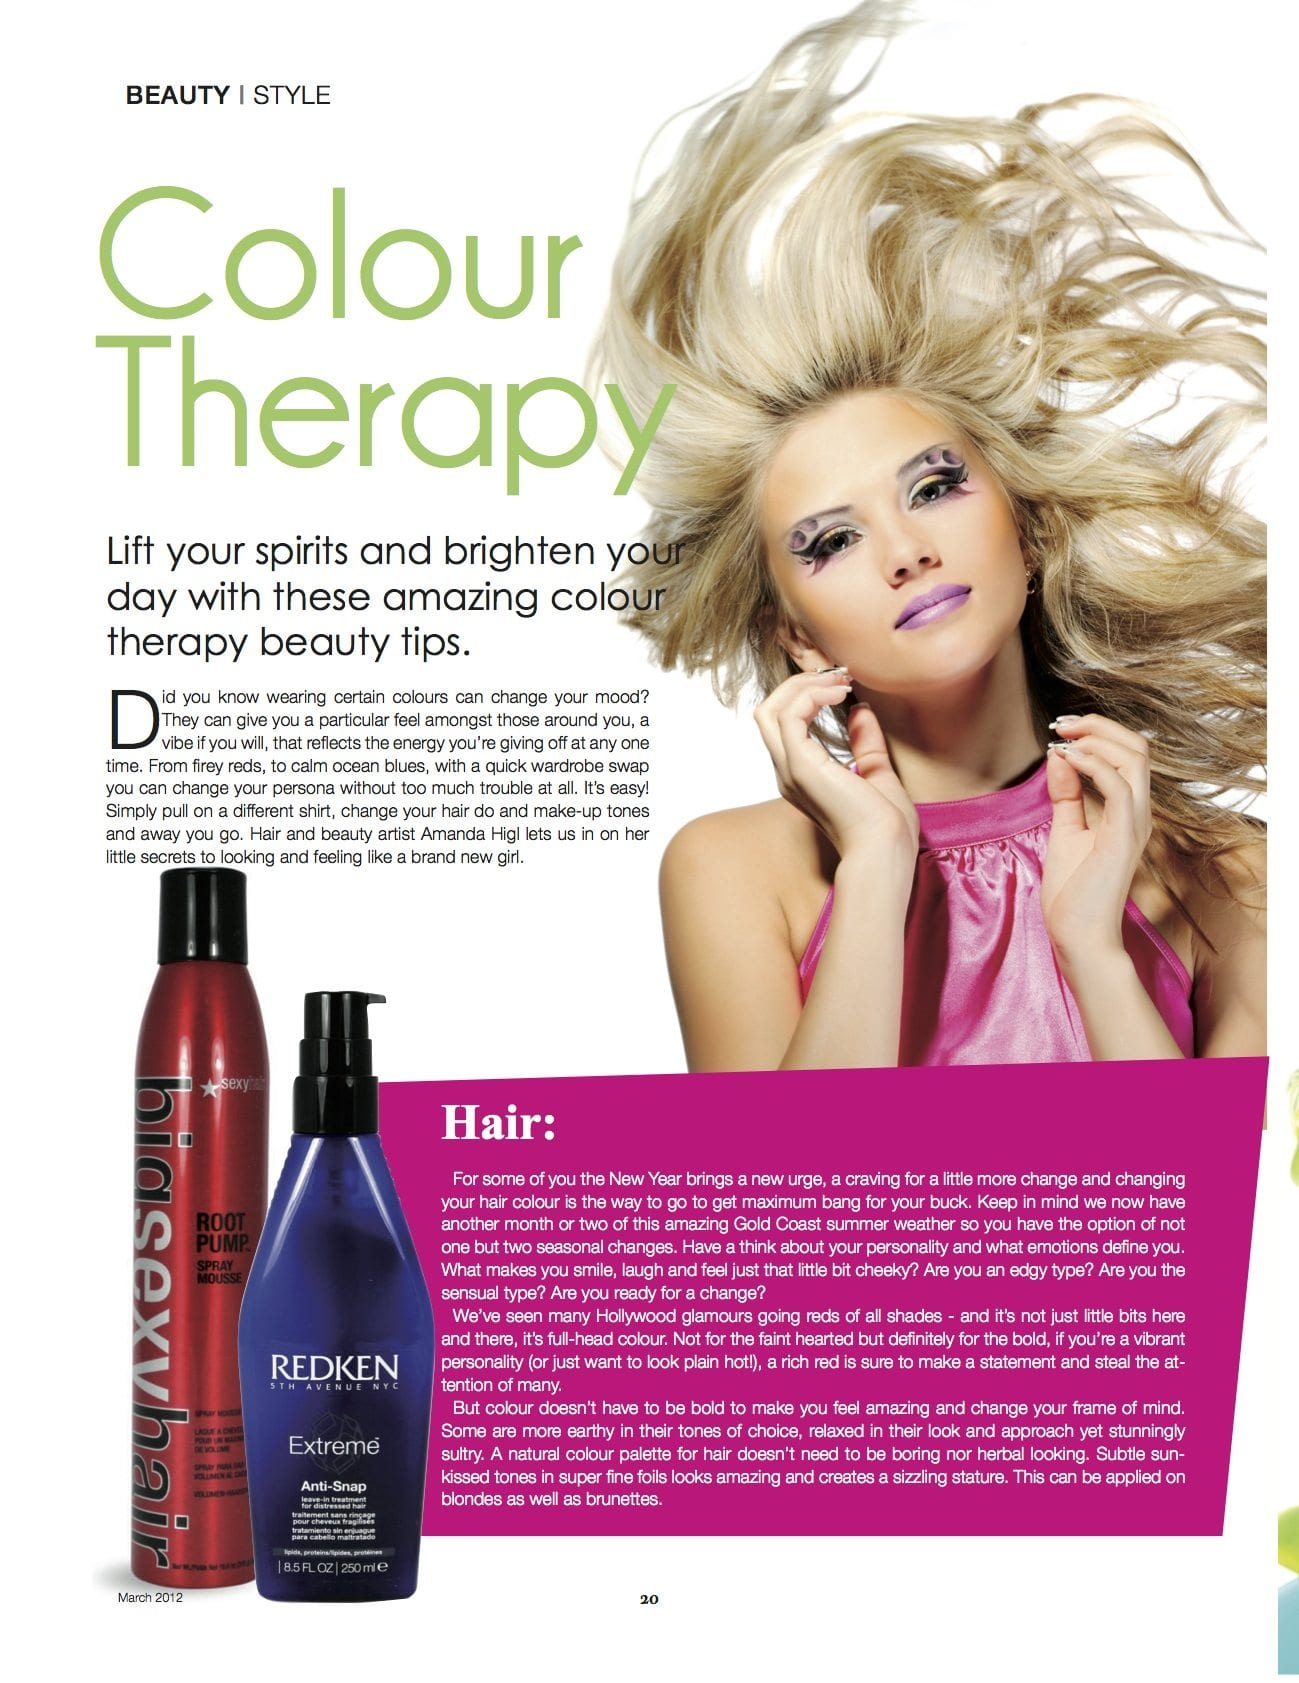 Colour therapy for beauty - Colour Therapy Article